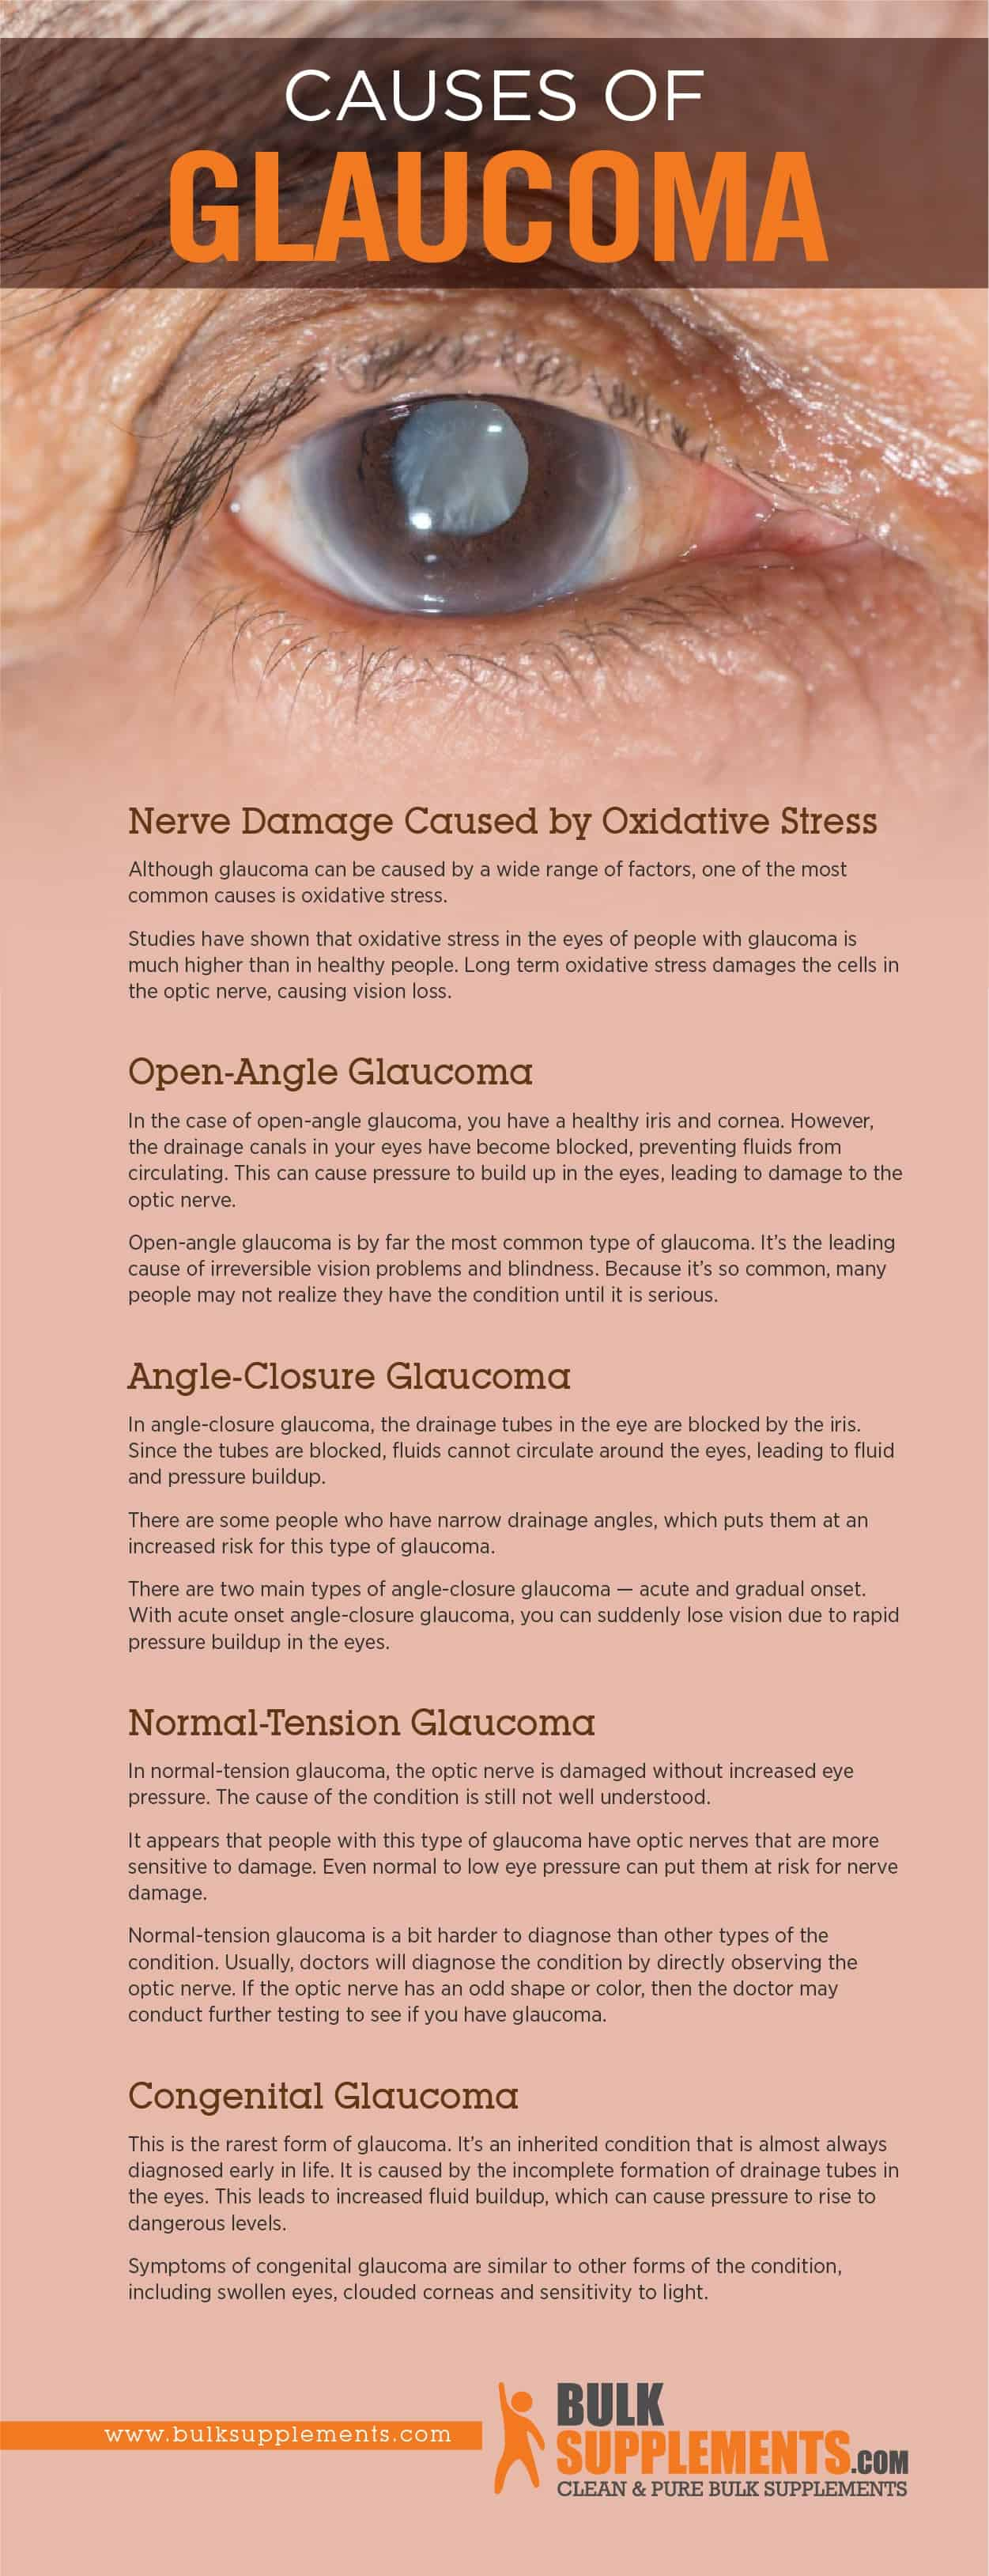 Causes of Glaucoma